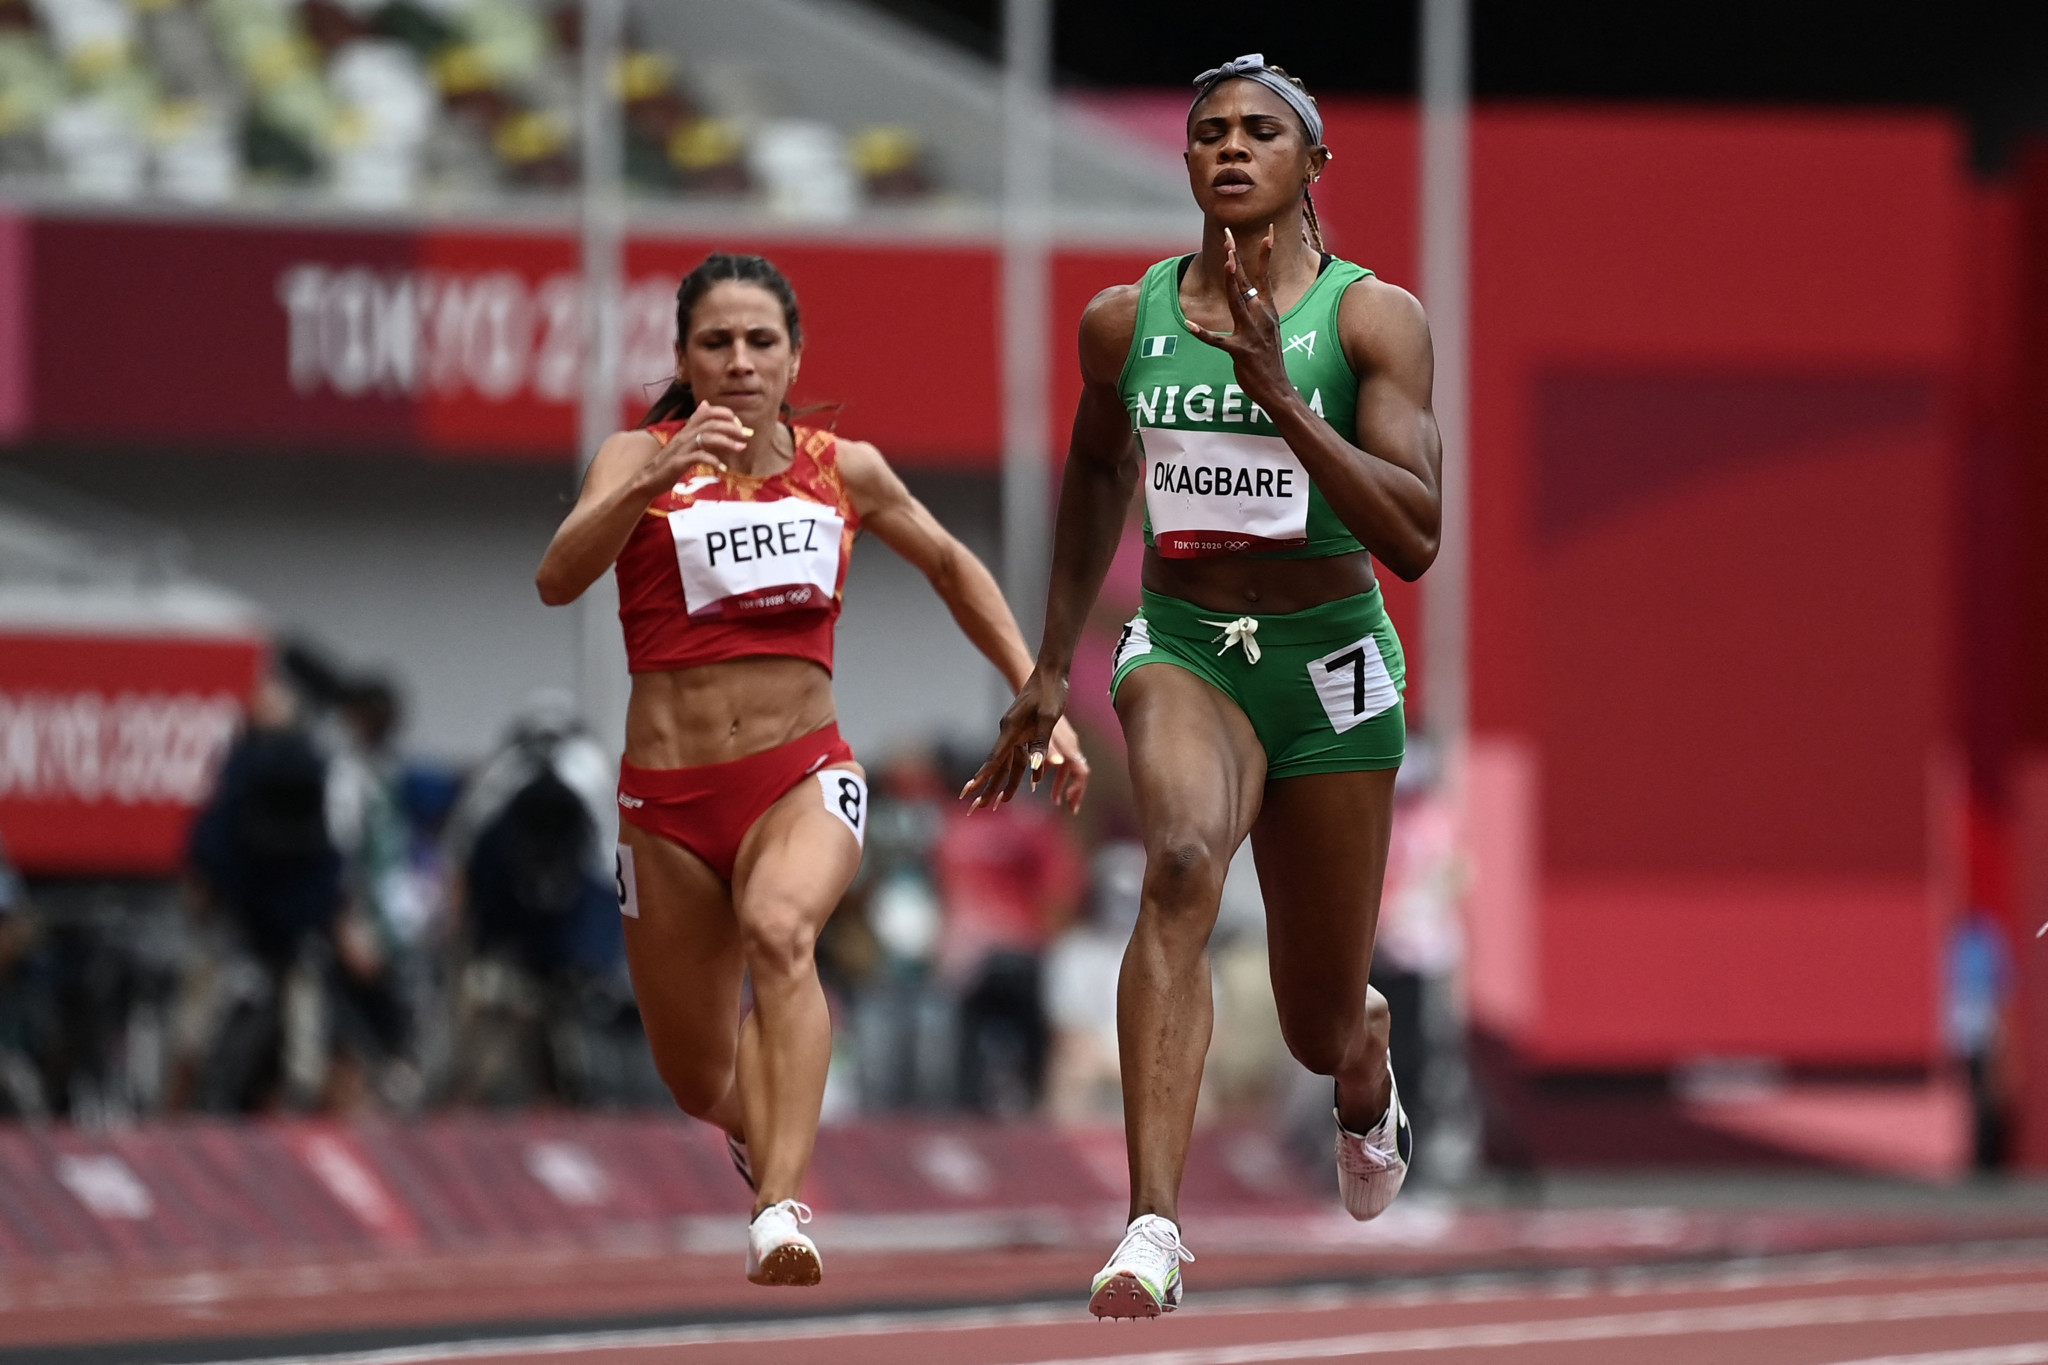 Blessing Okagbare won her heat in the 100 metres at Tokyo 2020 yesterday ©Getty Images